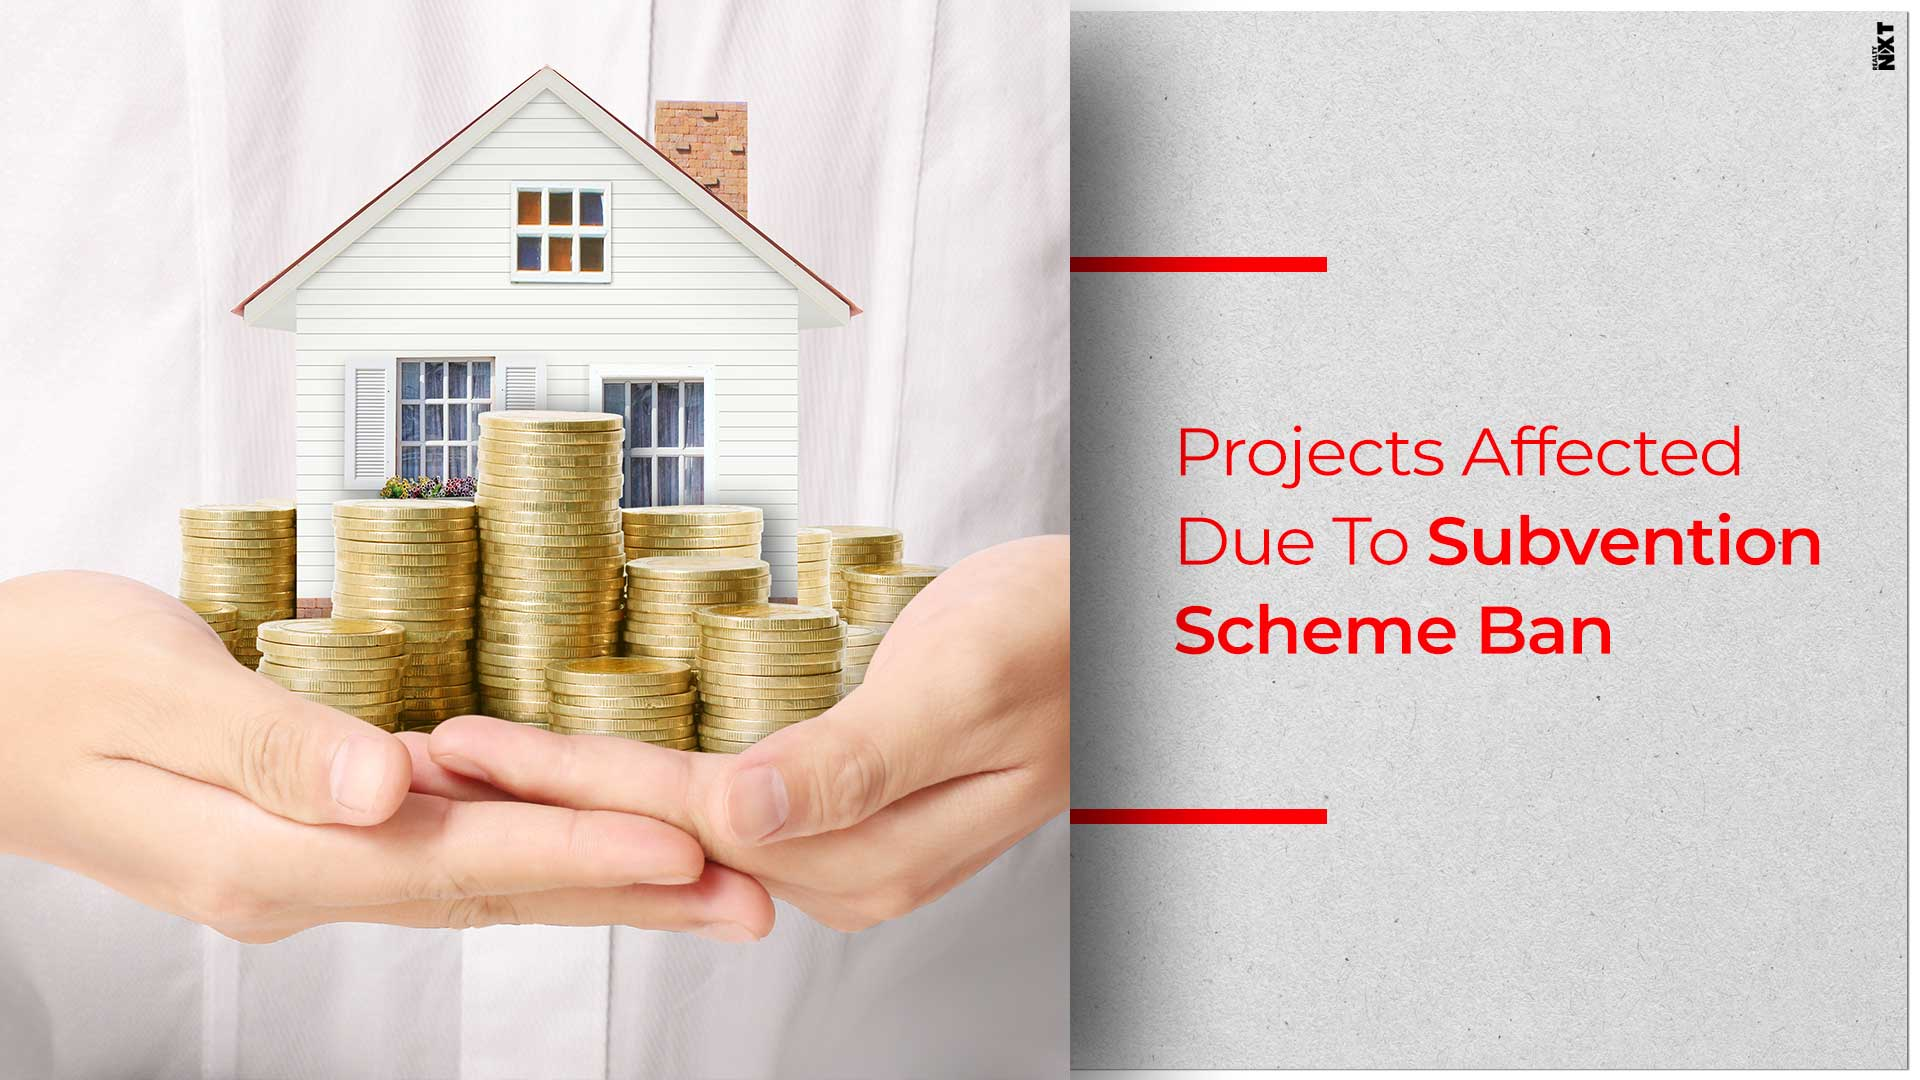 23 Out Of 280 Projects Marketed Under Subvention Scheme